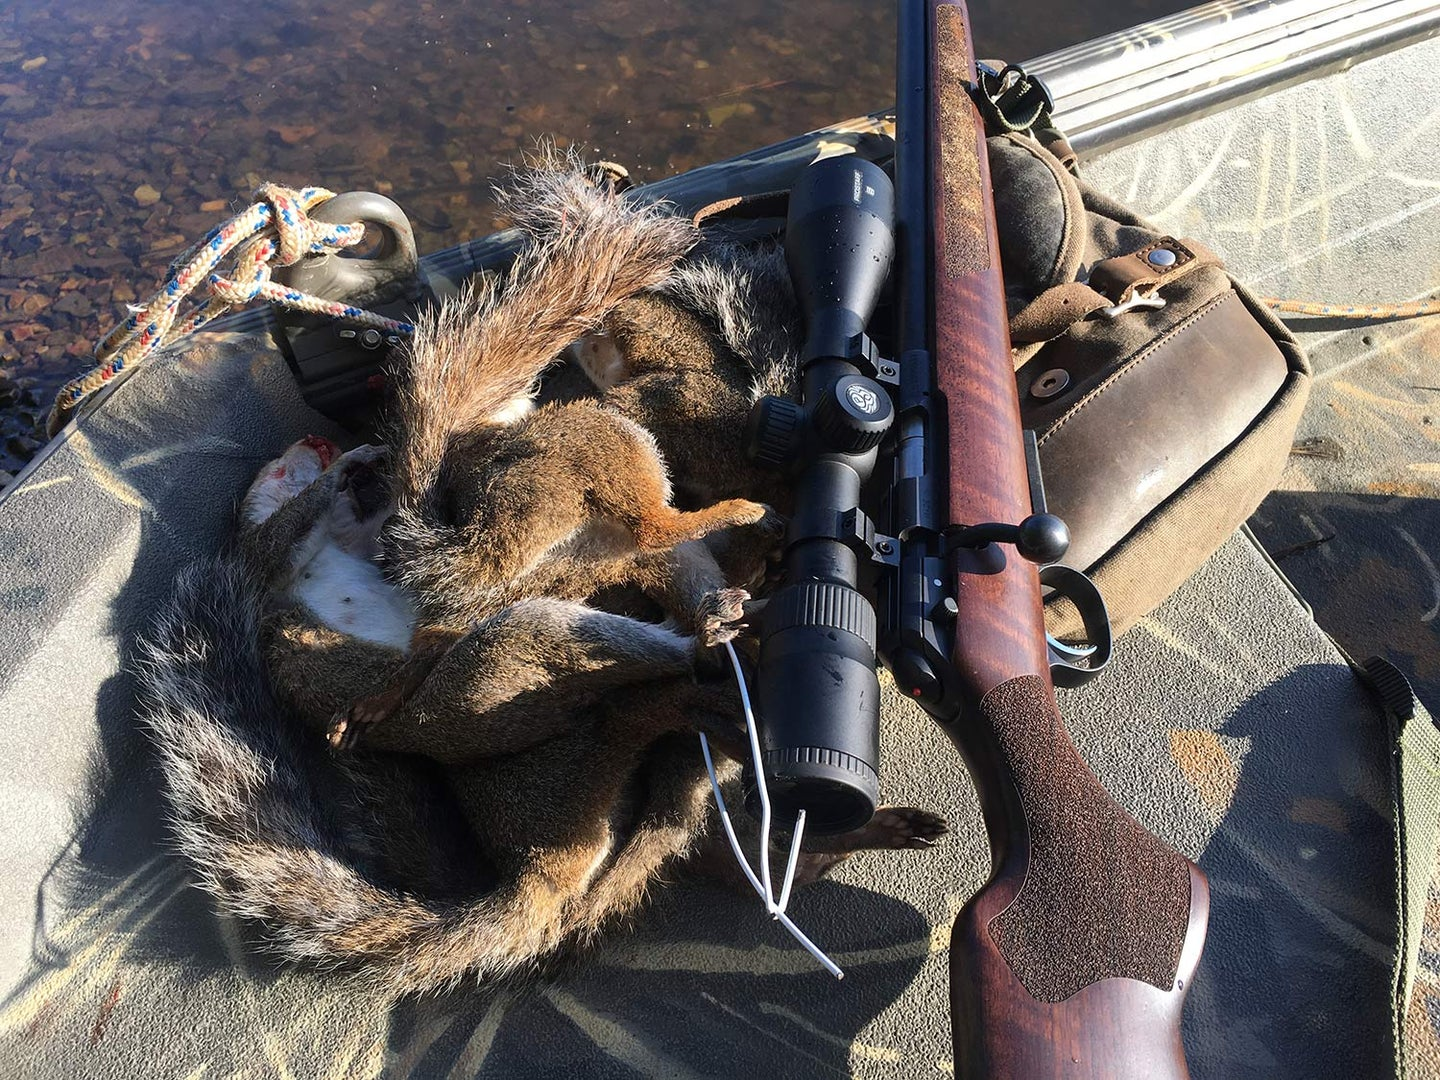 A rifle next to a small squirrel